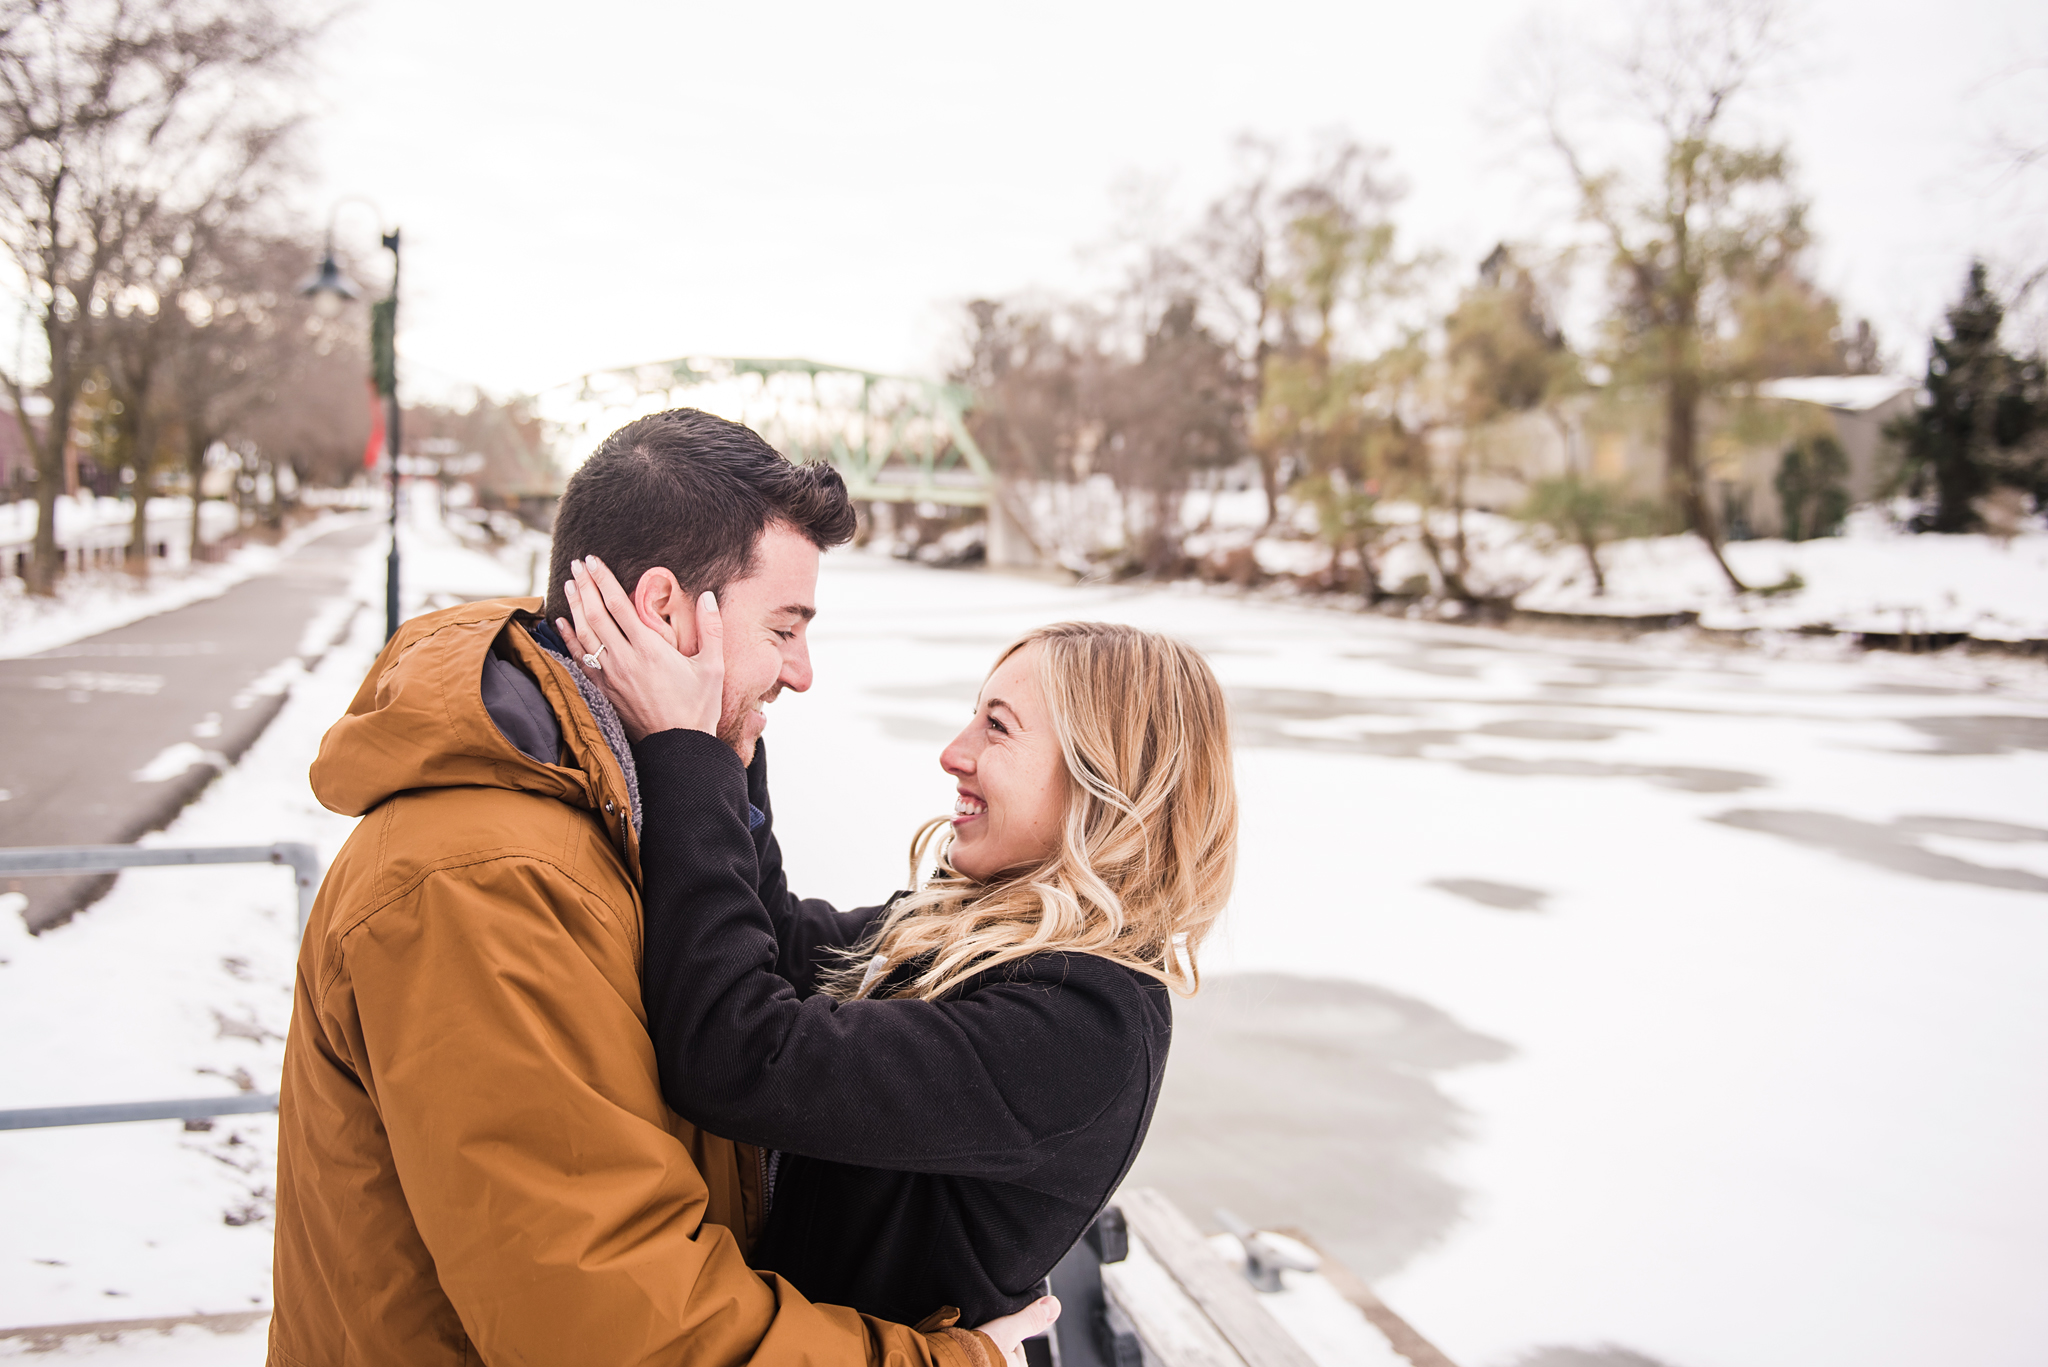 Schoen_Place_Rochester_Engagement_Session_JILL_STUDIO_Rochester_NY_Photographer_DSC_1147.jpg